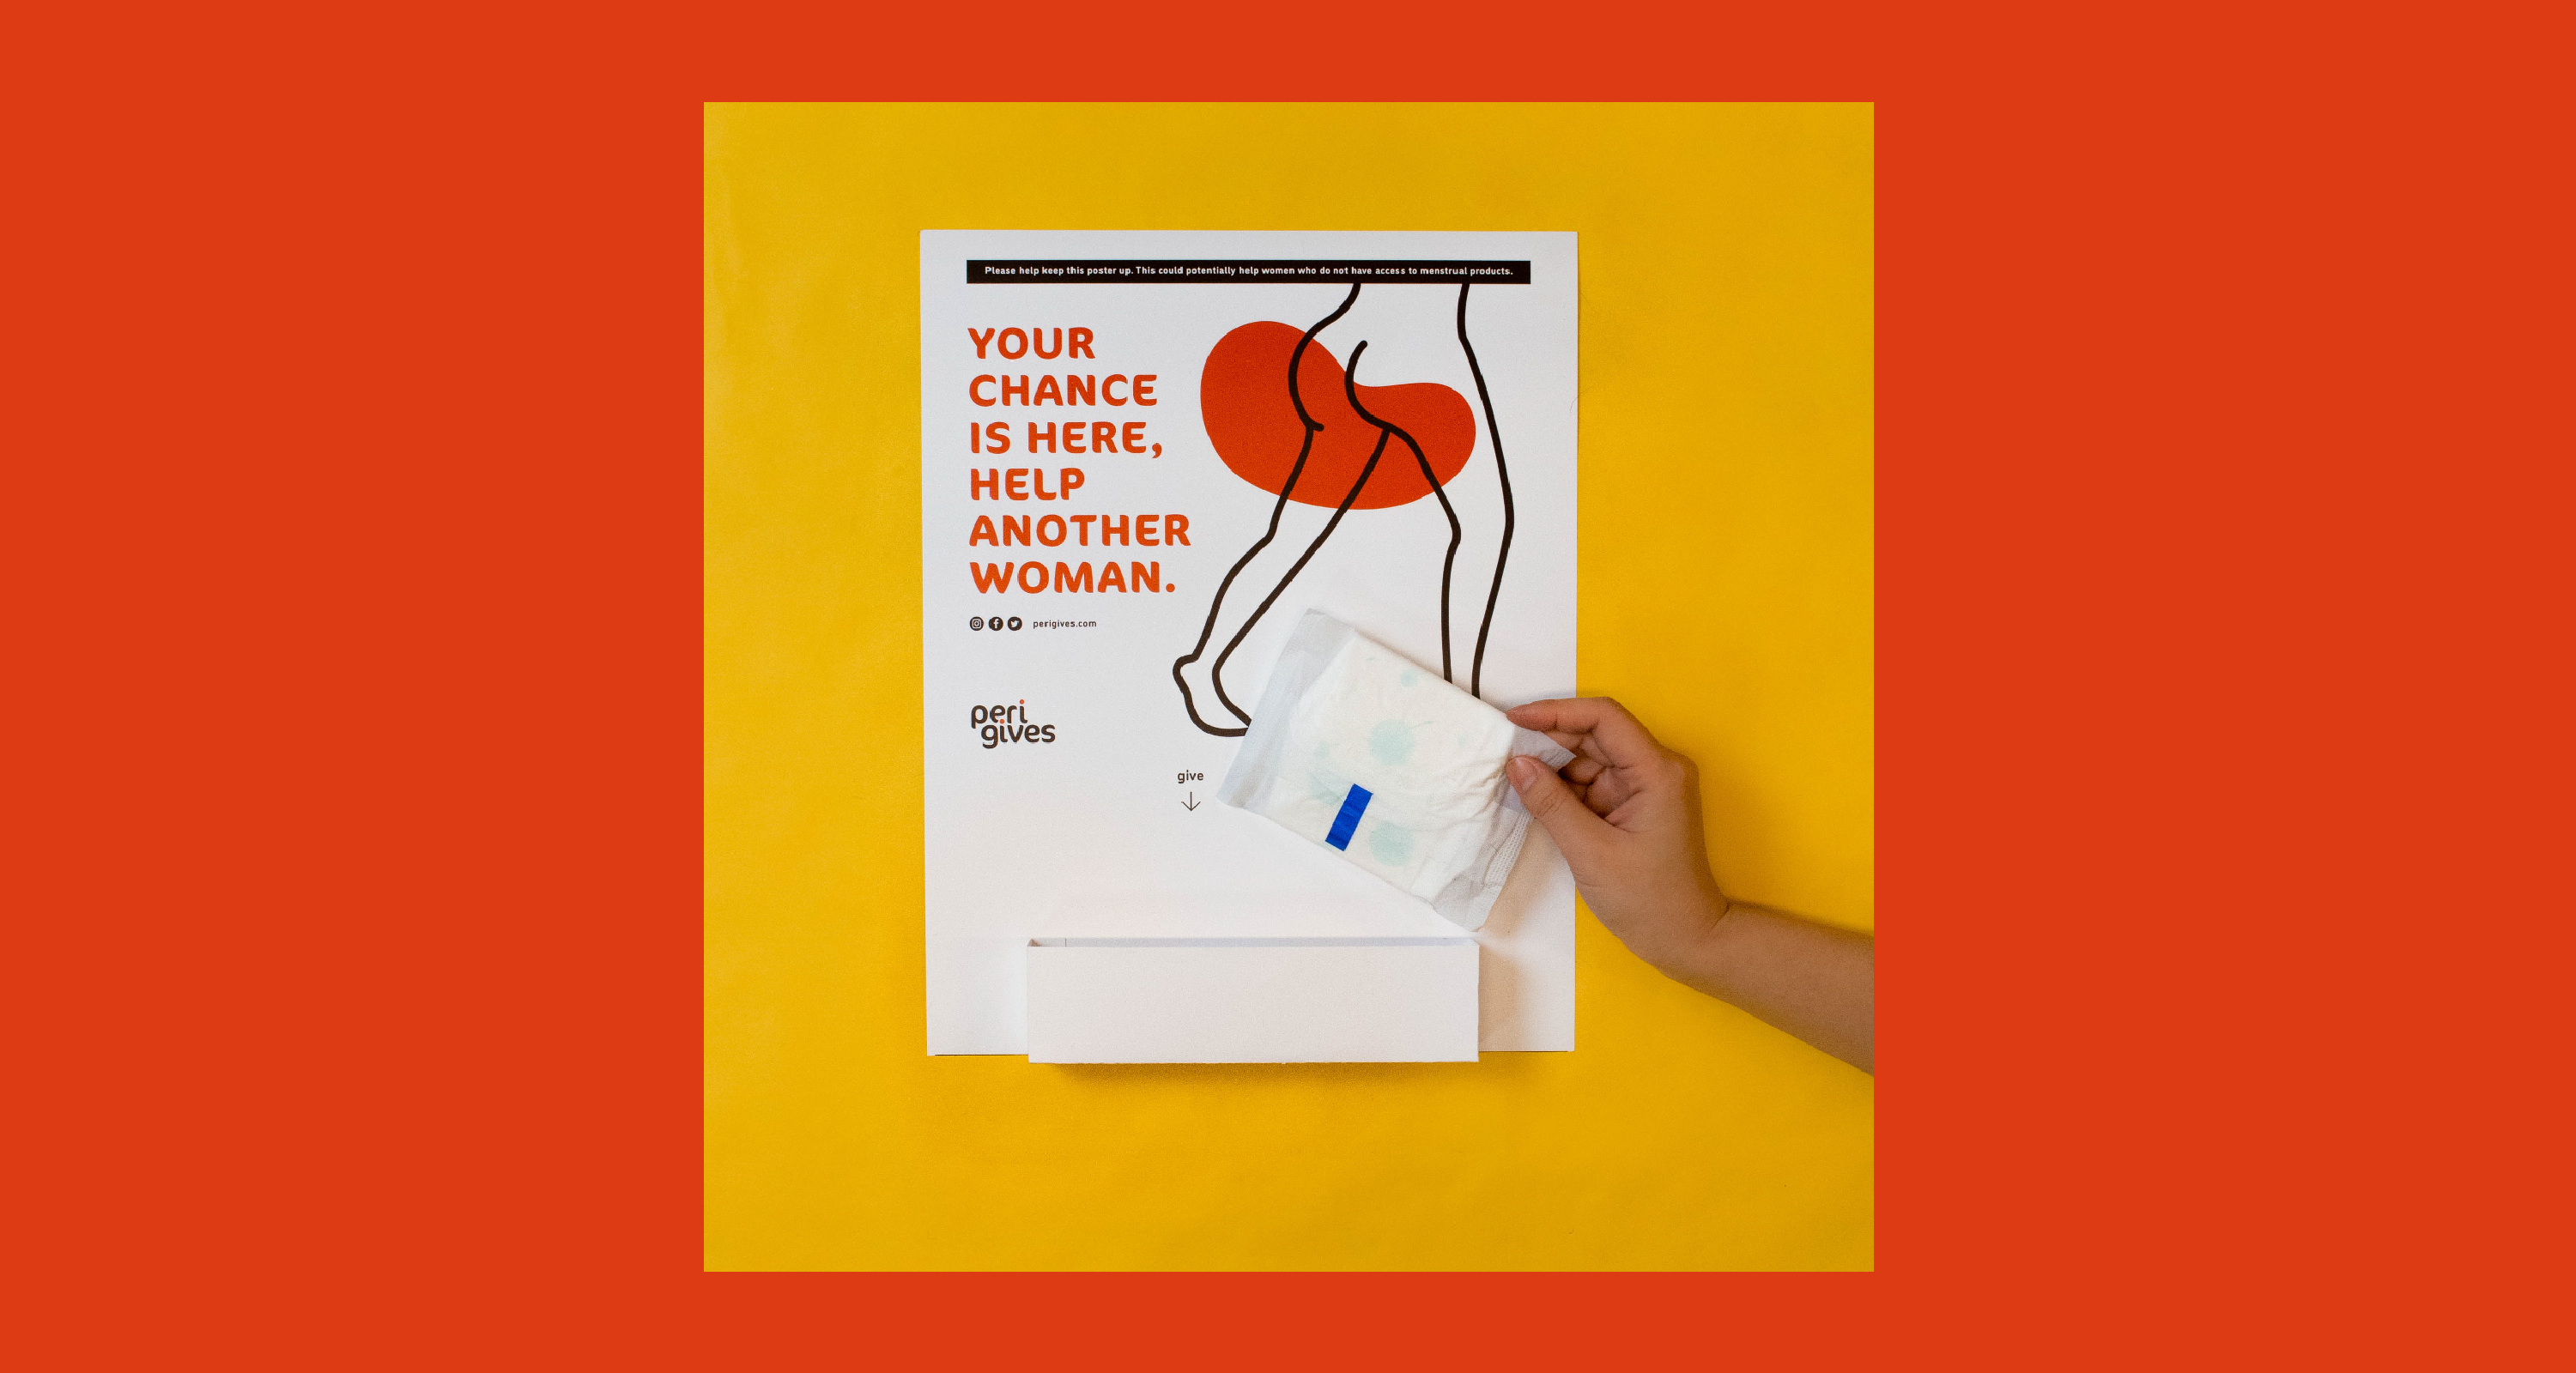 Solving the lack of menstrual products for homeless with a poster